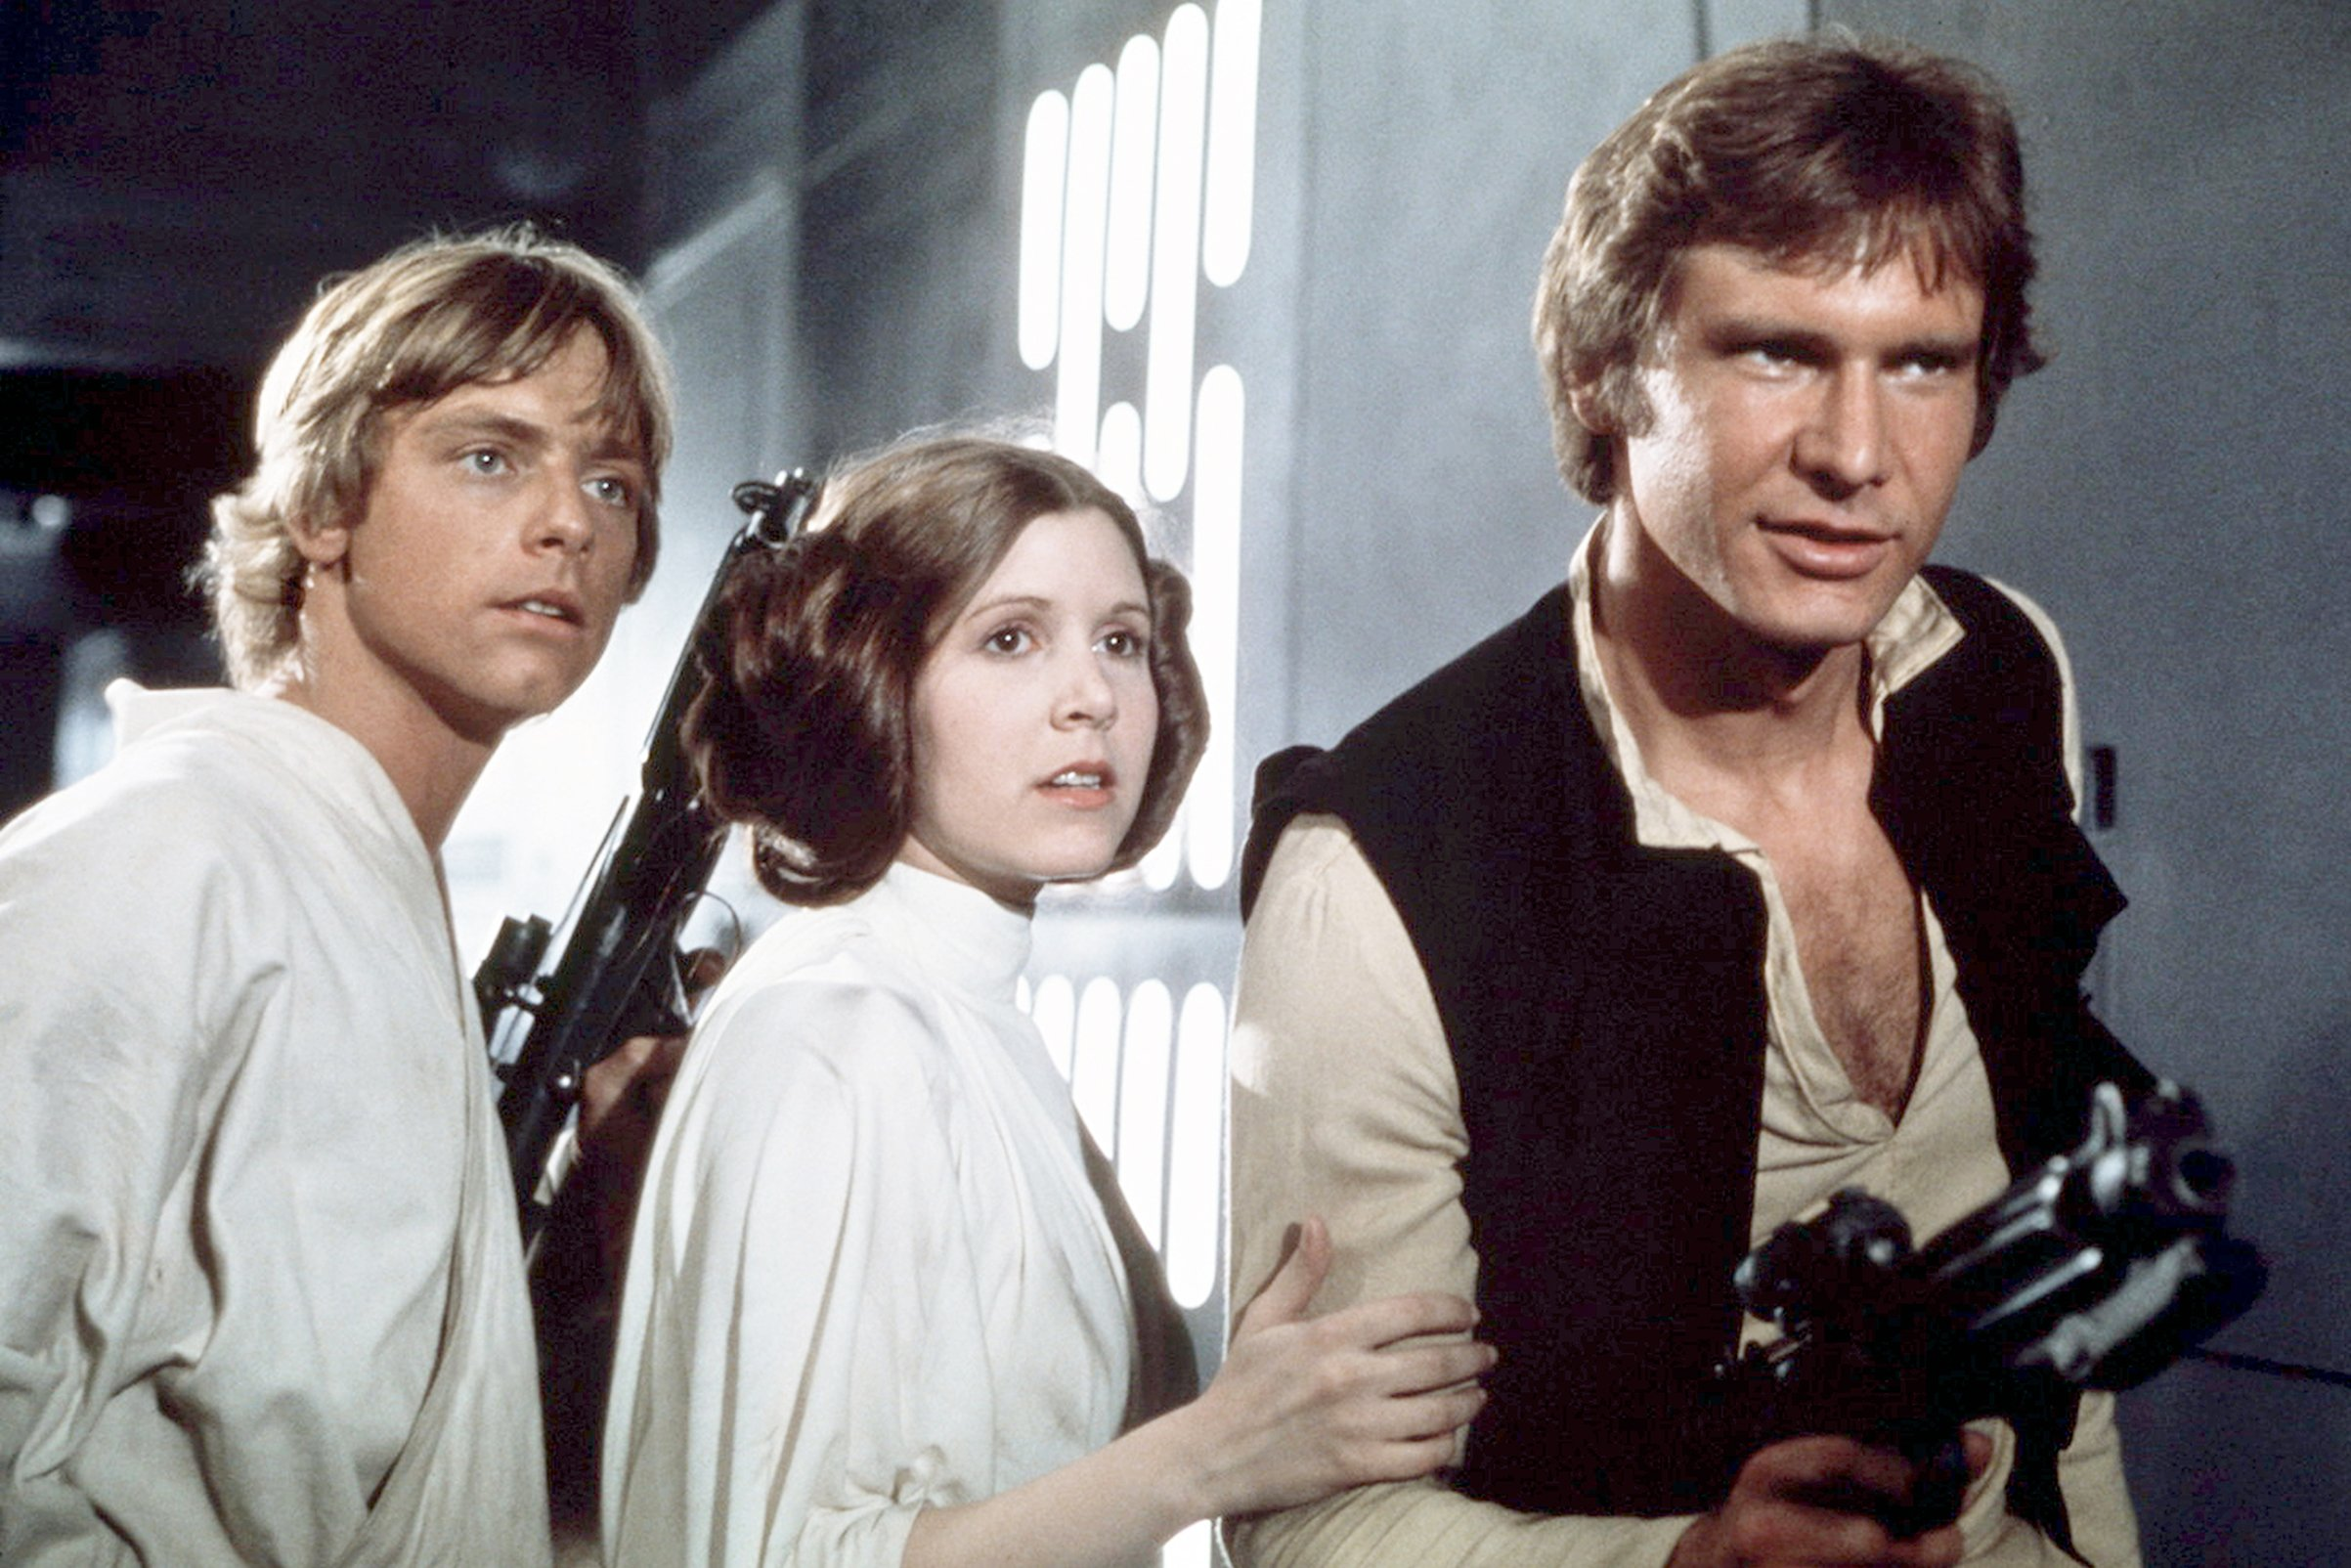 a star 10 Fascinating Facts About The Legendary Carrie Fisher